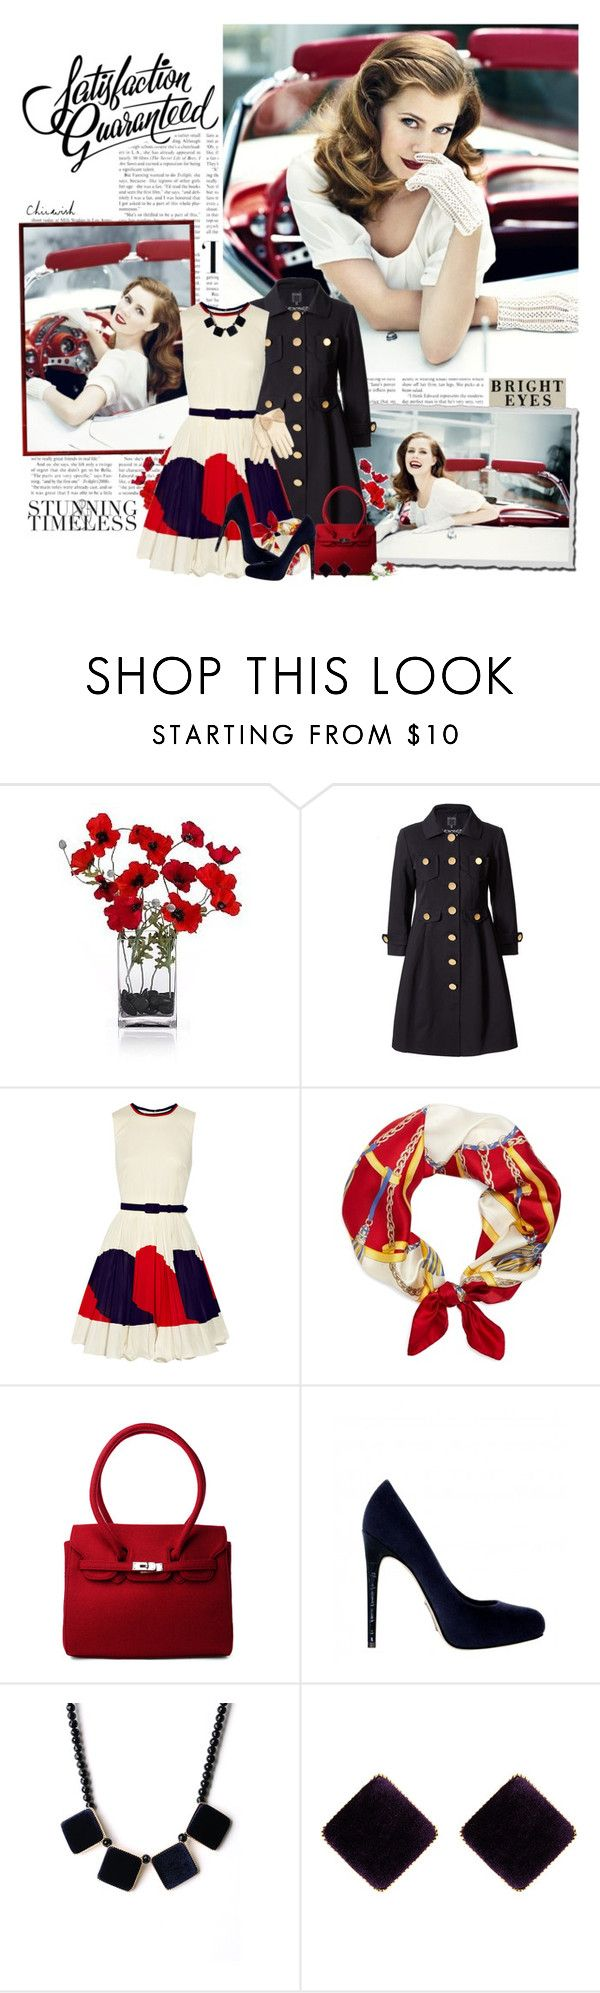 """""""Stunning and Timeless"""" by violetta-valery ❤ liked on Polyvore featuring Orla Kiely, Milly, Chicwish, Brooks Brothers, Alejandro Ingelmo, Accessorize, MANGO, milly, white and wwii"""